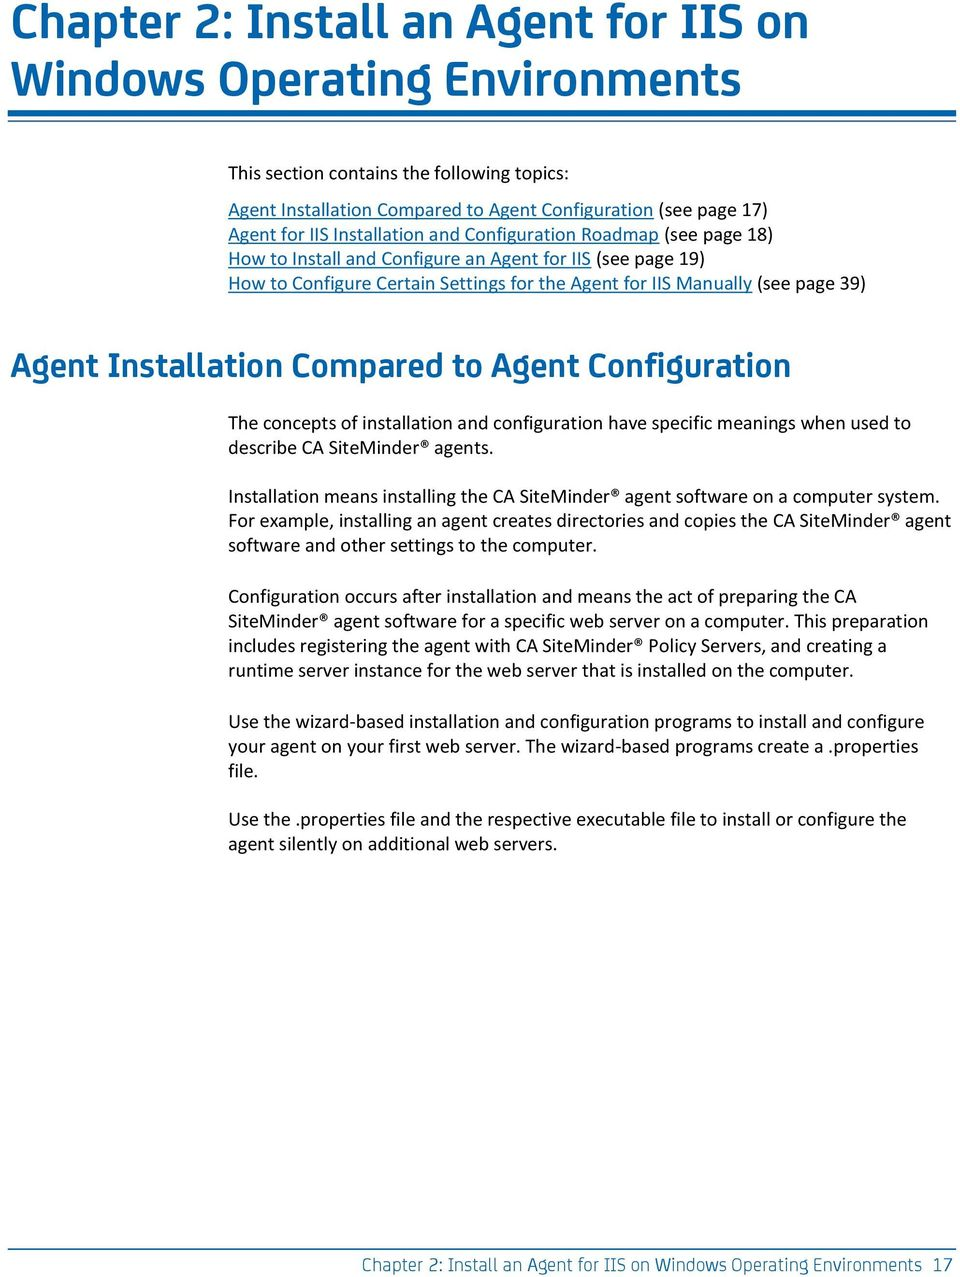 Installation Compared to Agent Configuration The concepts of installation and configuration have specific meanings when used to describe CA SiteMinder agents.